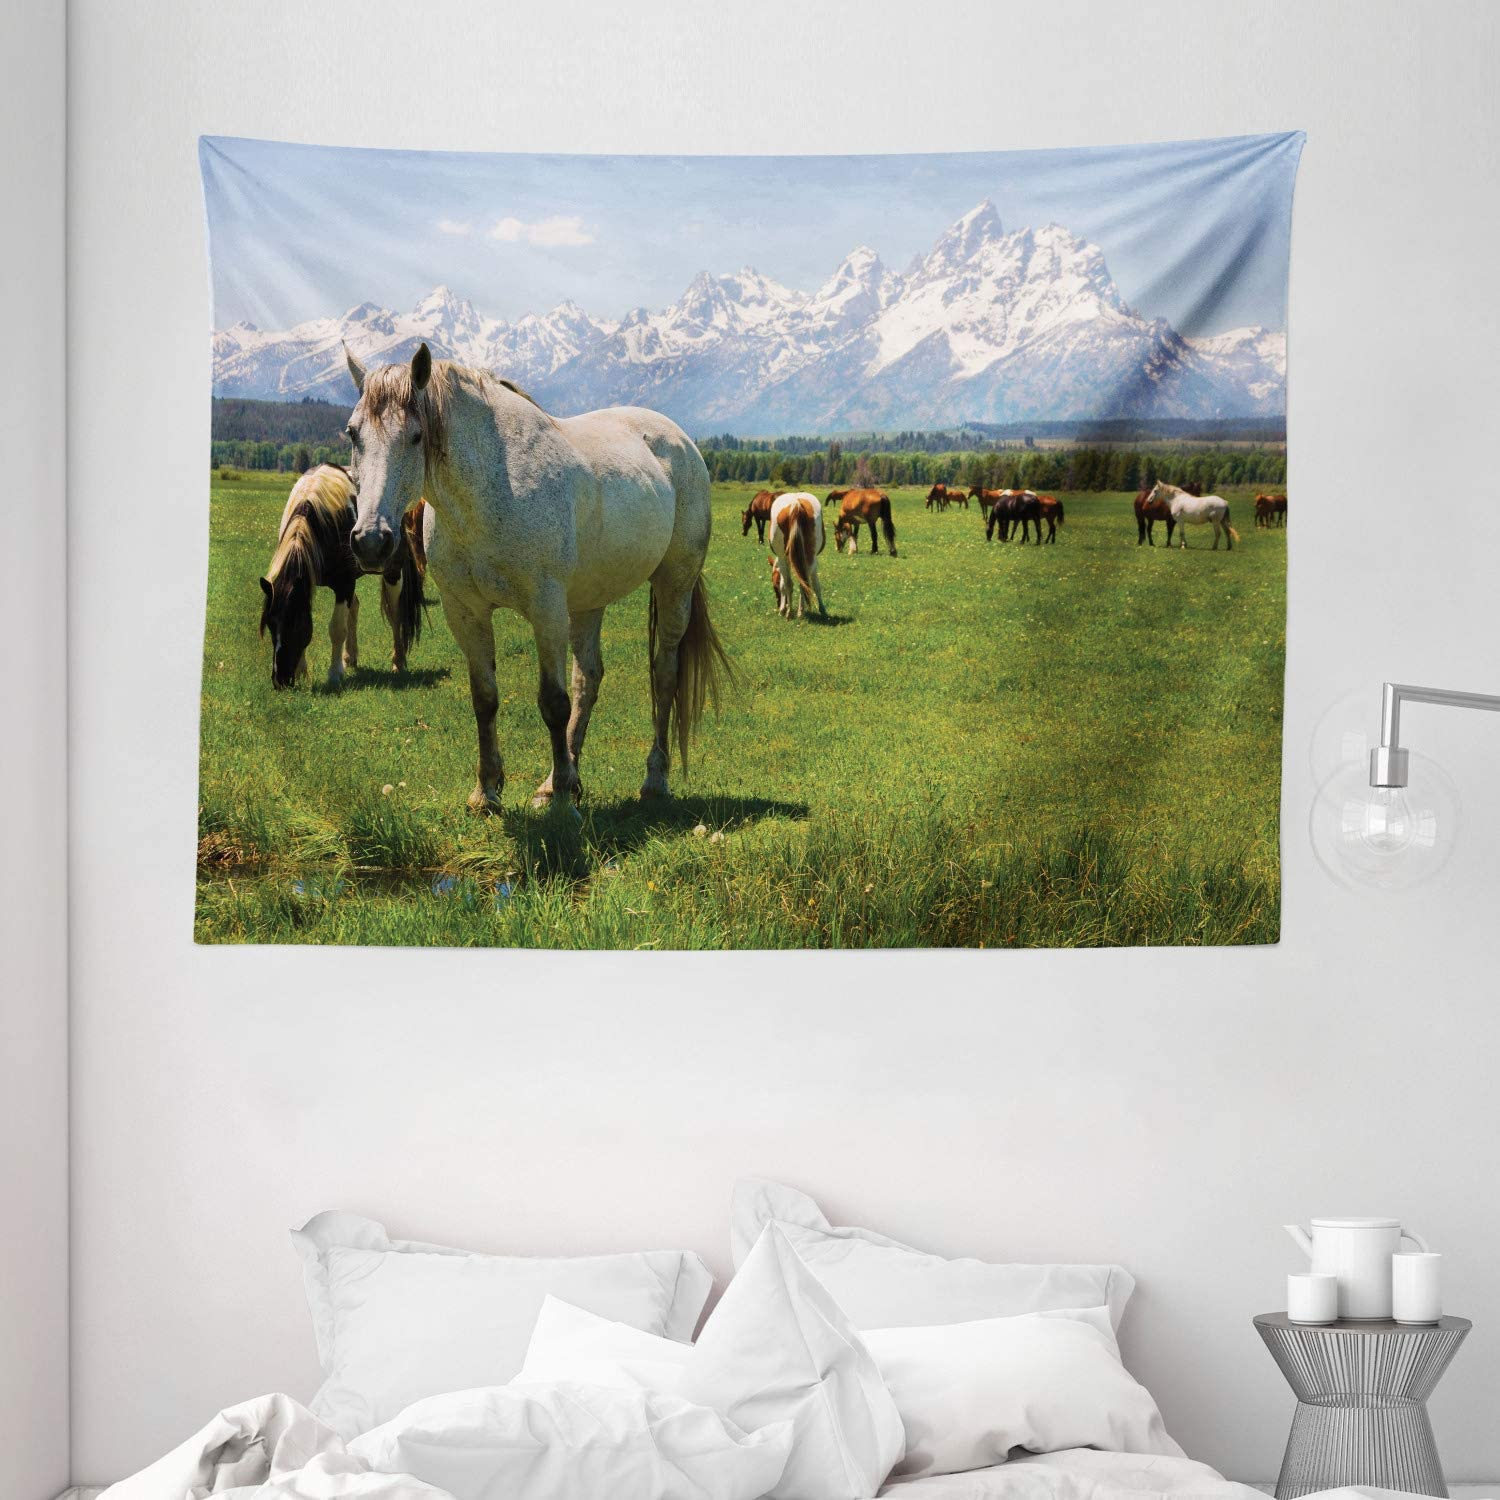 Ambesonne National Parks Home Decor Tapestry, Equestrian Decor Snow Idyllic Mountain Peaks Arabian Horse Art Prints, Wall Hanging for Bedroom Living Room Dorm, 80 W X 60 L Inches, Multi